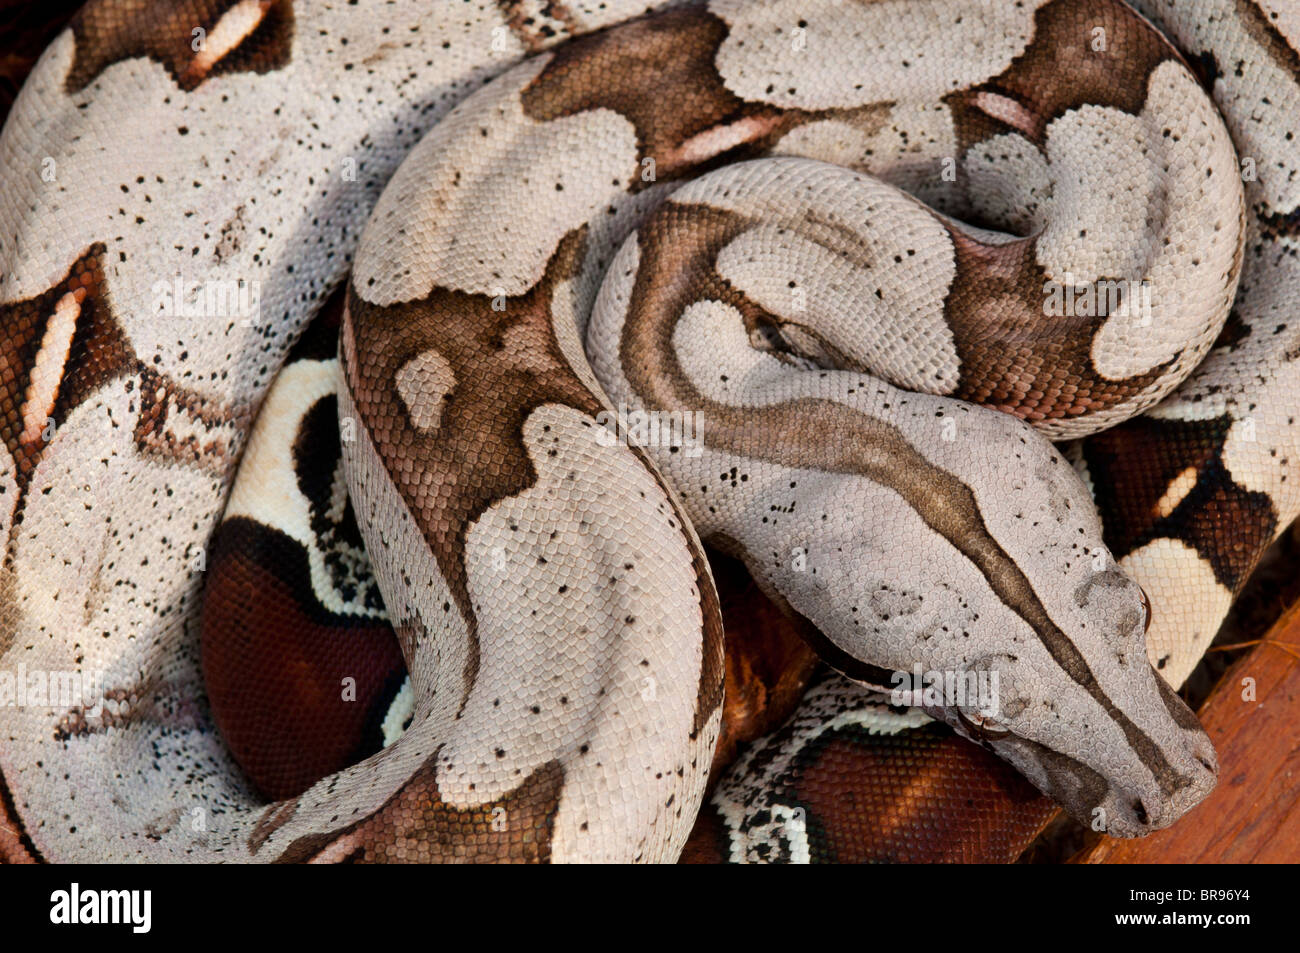 Young Red Tailed Boa constrictor from Suriname - Stock Image